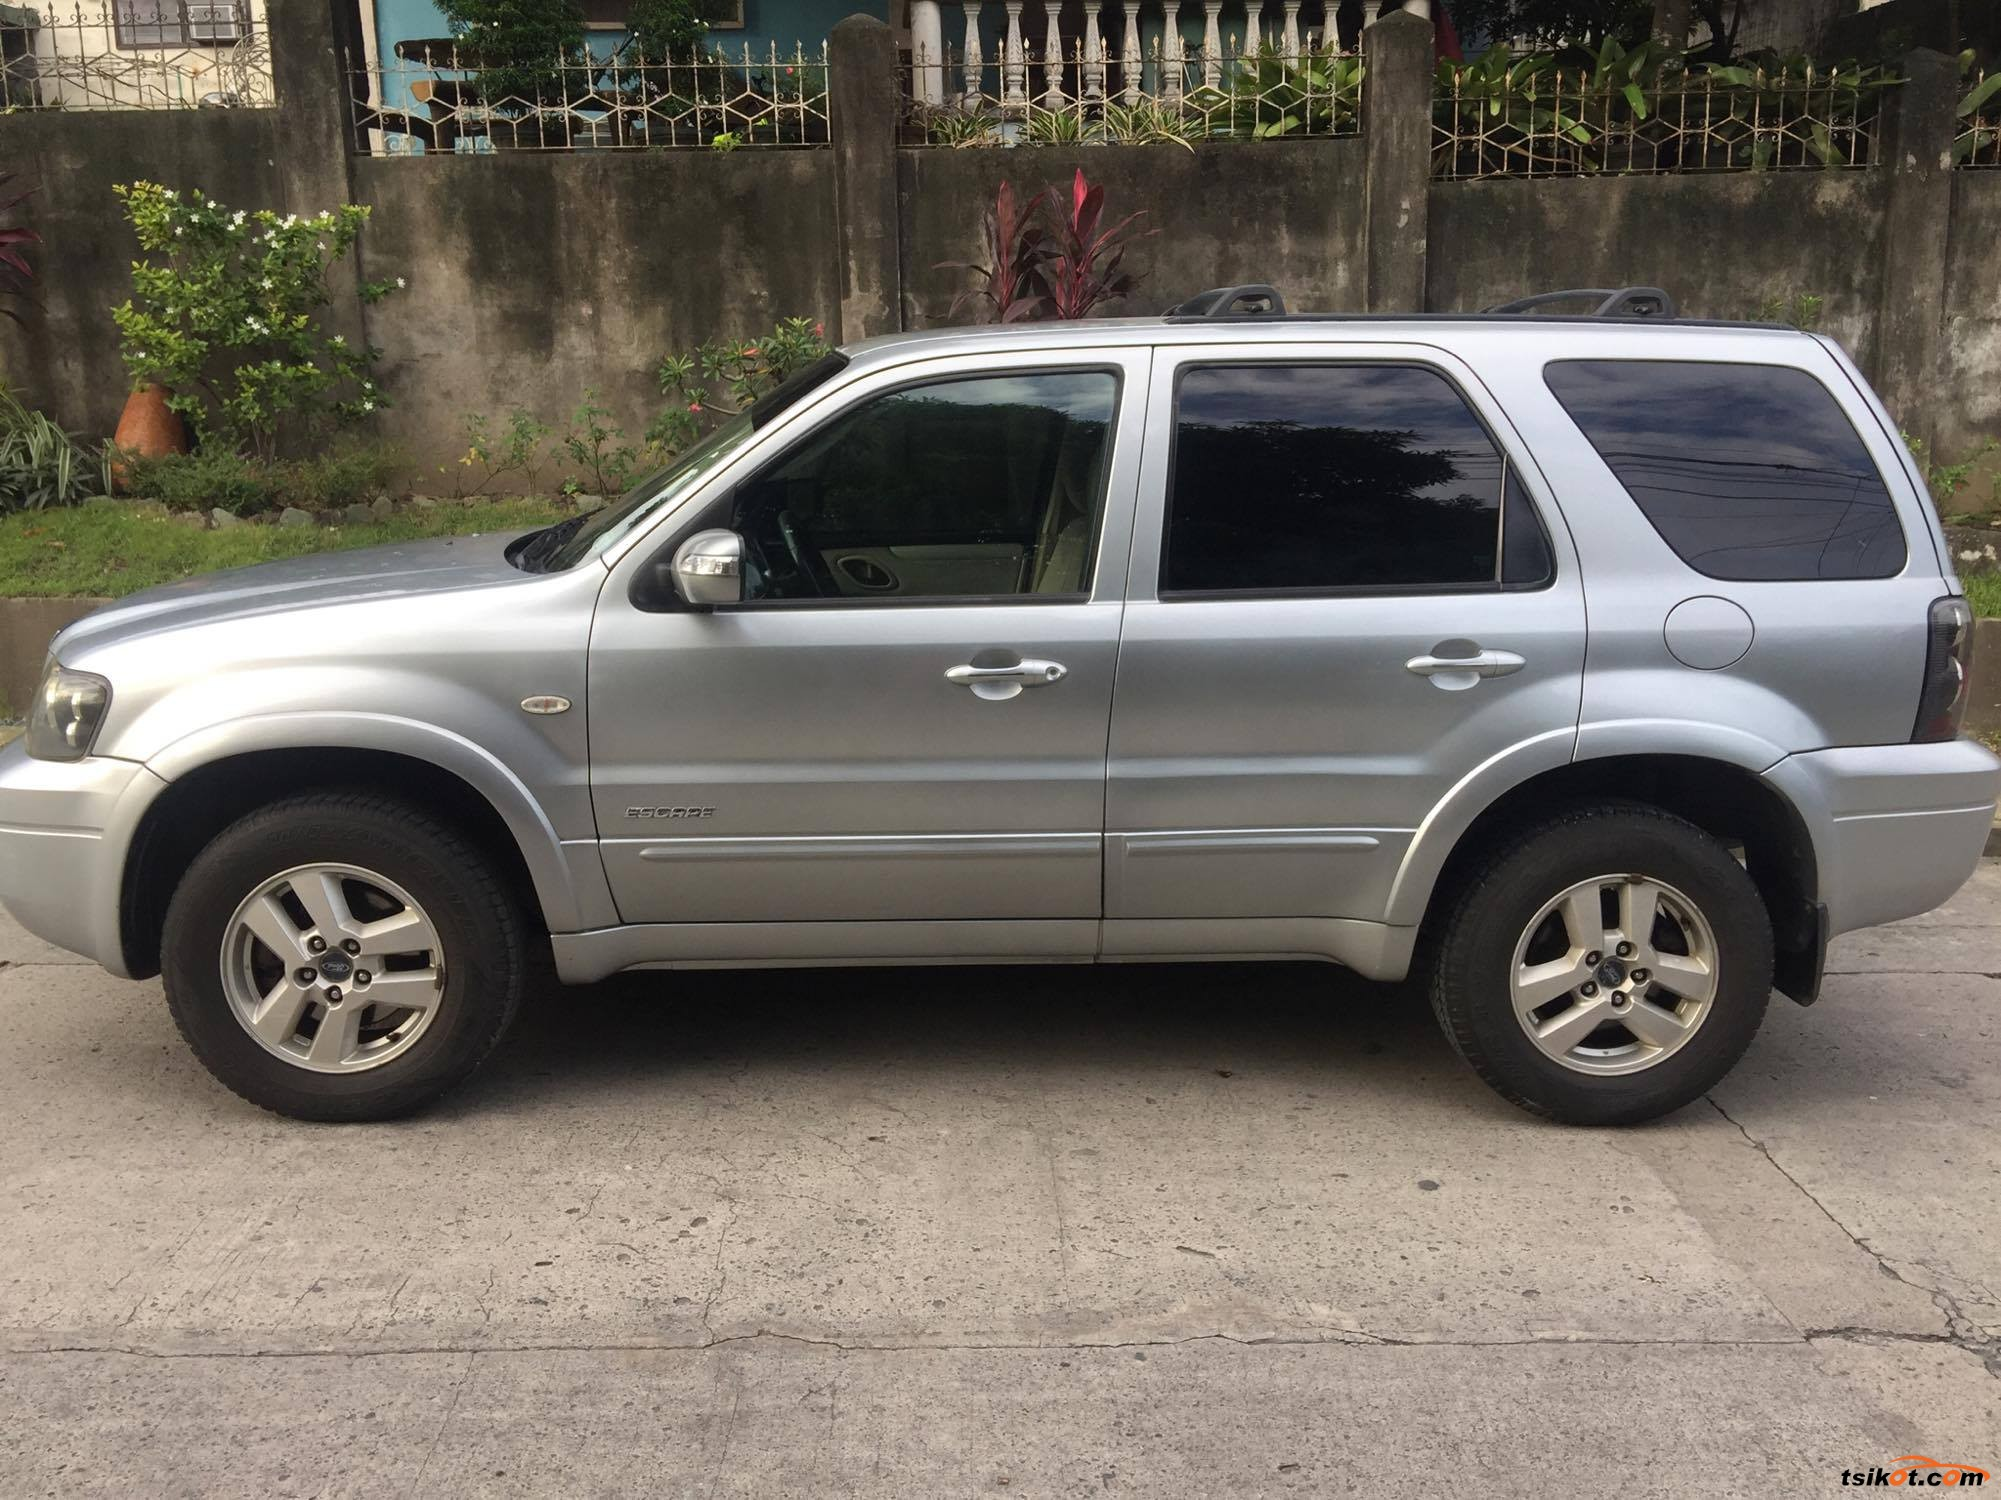 ford escape 2007 car for sale metro manila philippines. Black Bedroom Furniture Sets. Home Design Ideas